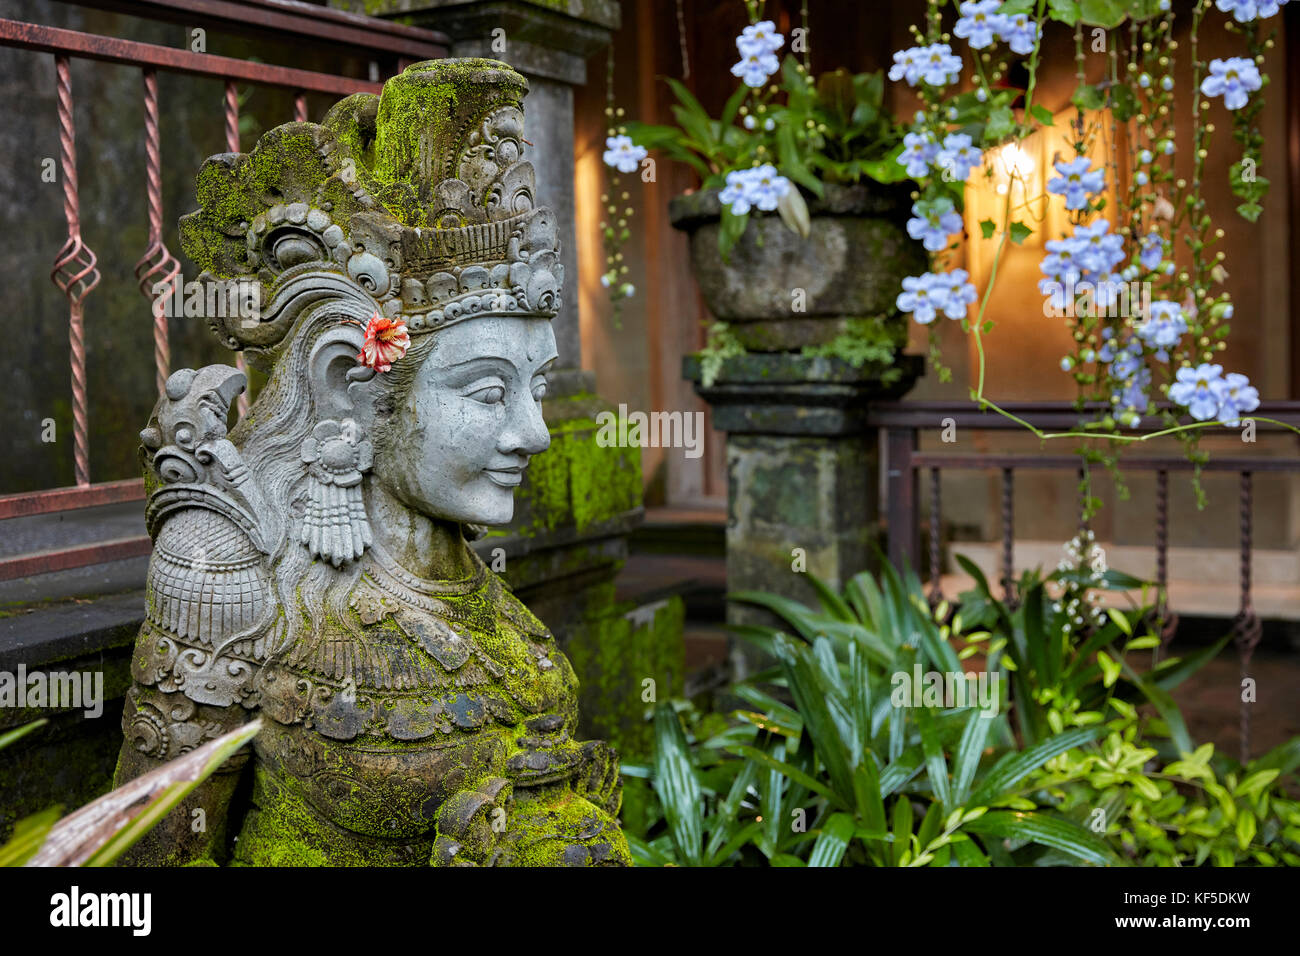 Statue in the garden. Hotel Tjampuhan Spa, Ubud, Bali, Indonesia. - Stock Image